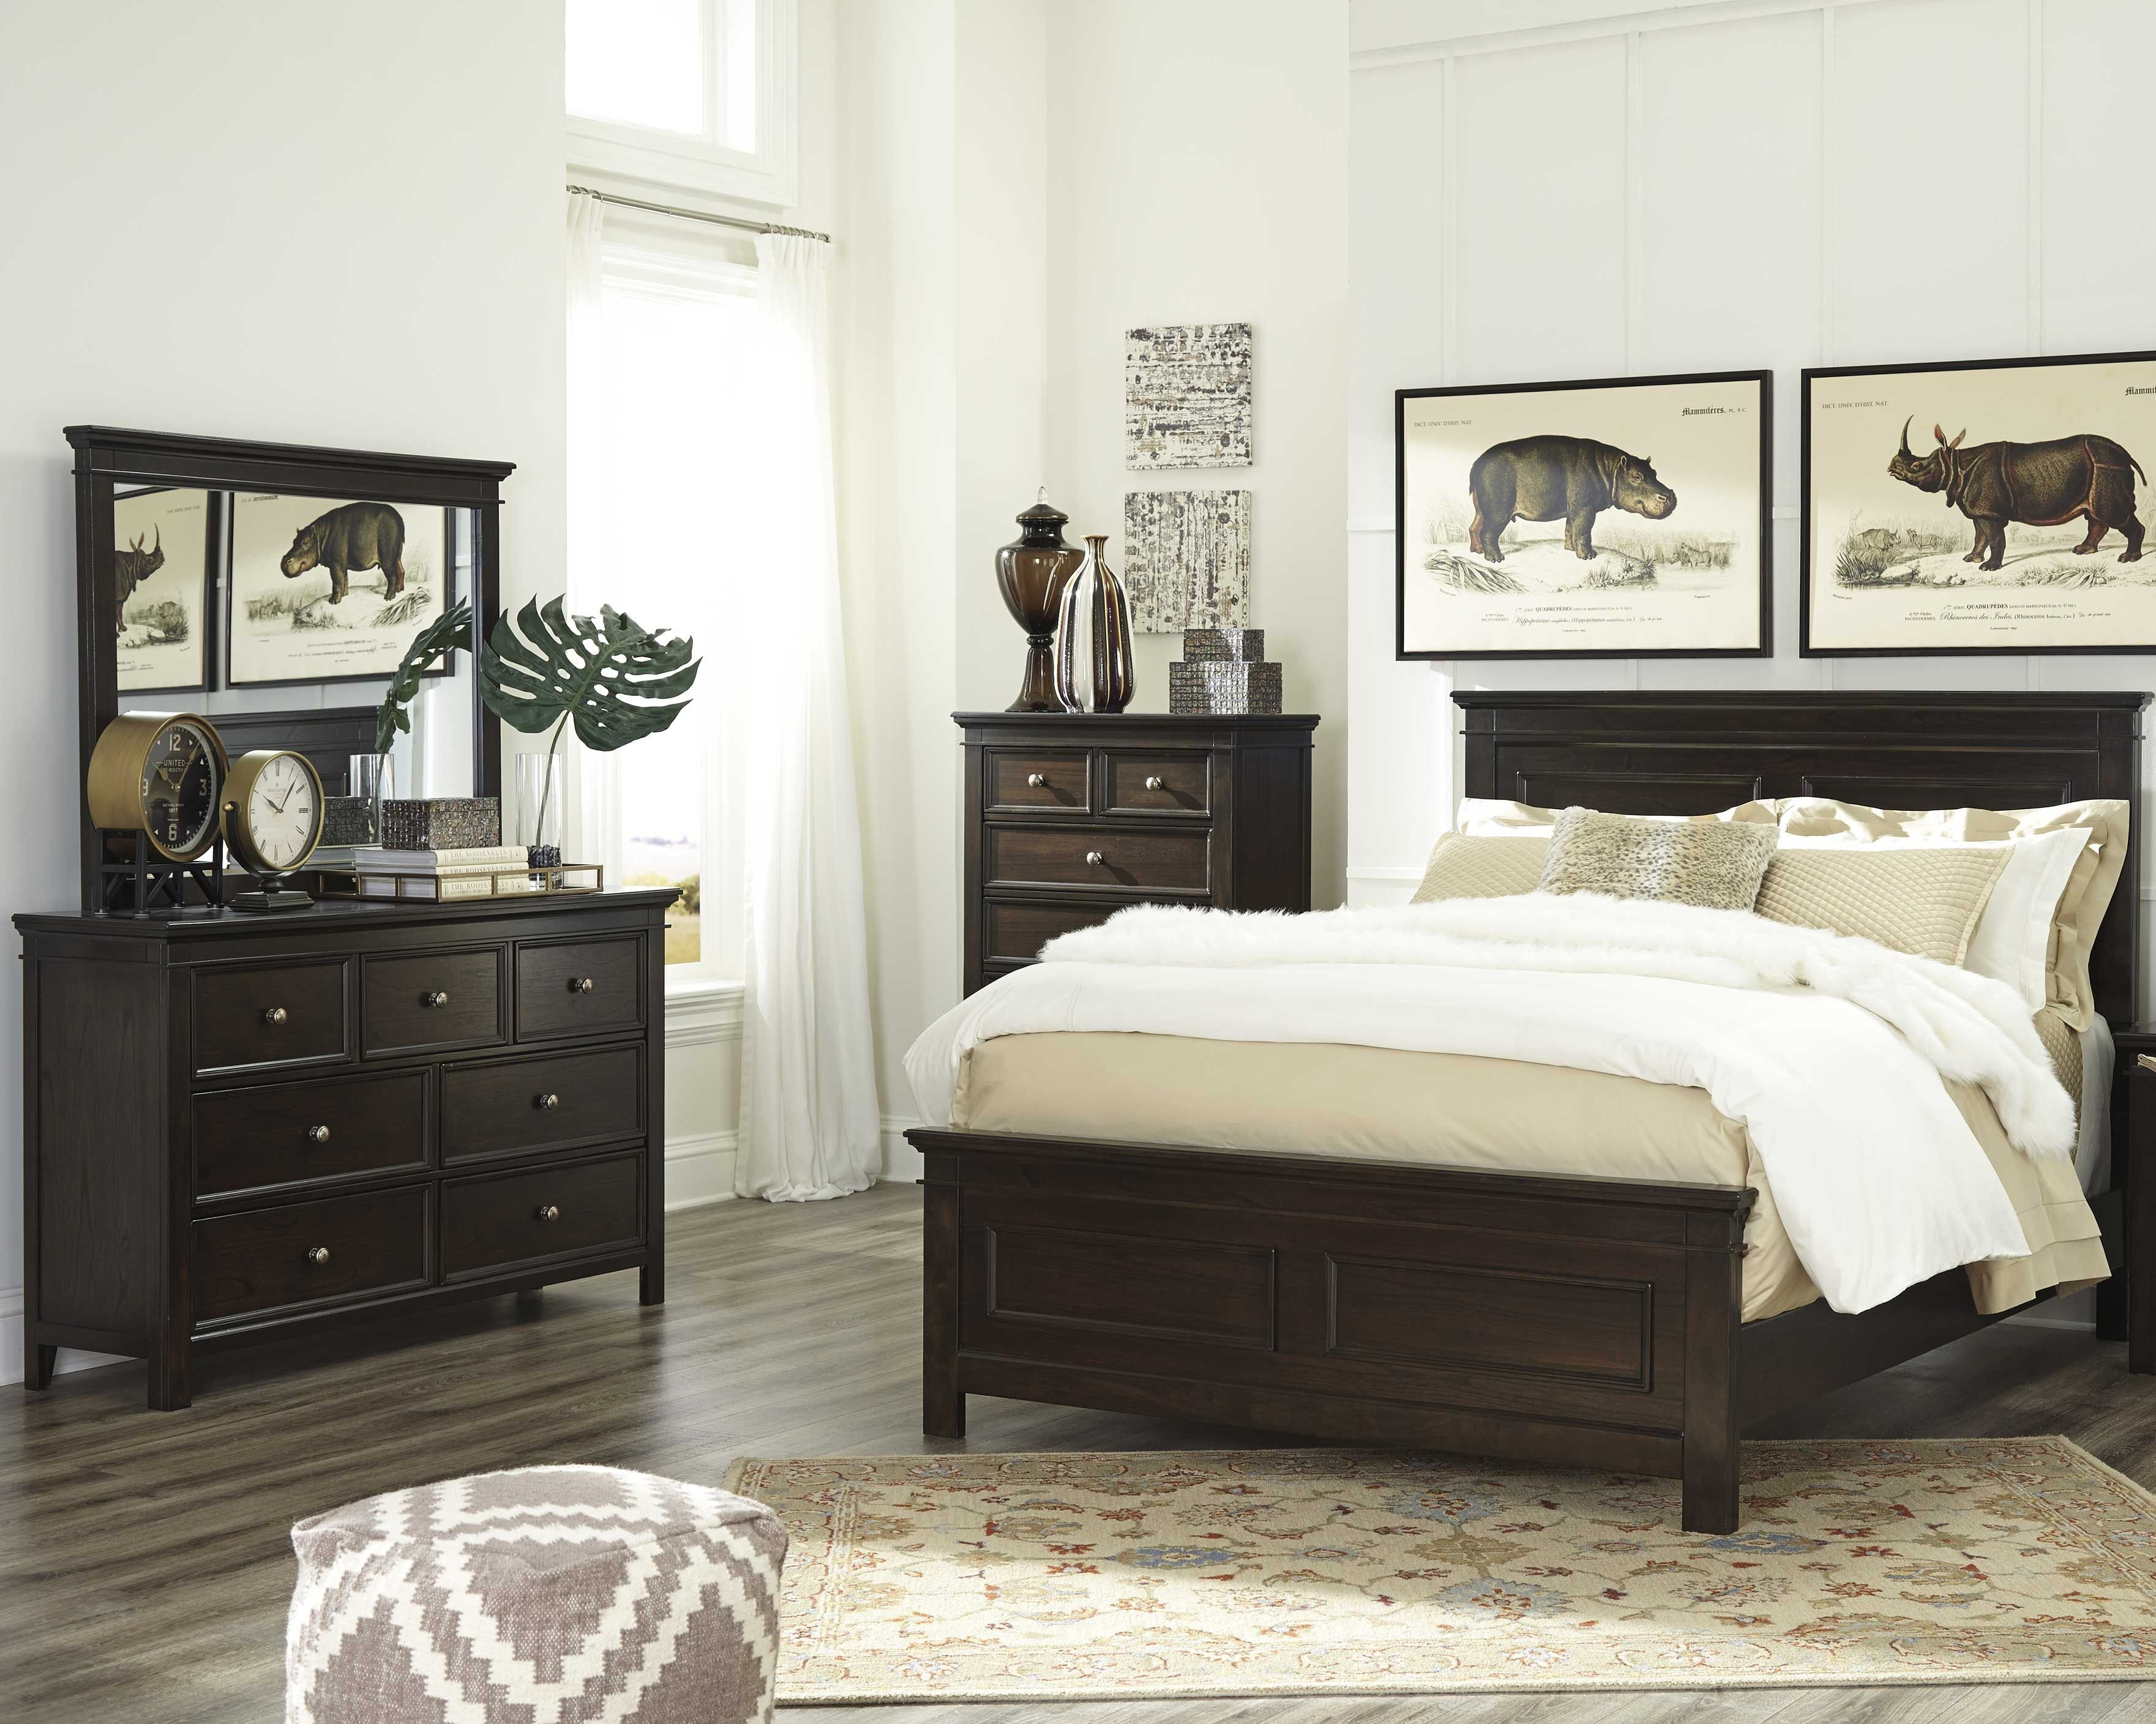 King Bedroom Furniture Set Elegant Alexee 5 Piece King Bedroom Dark Brown